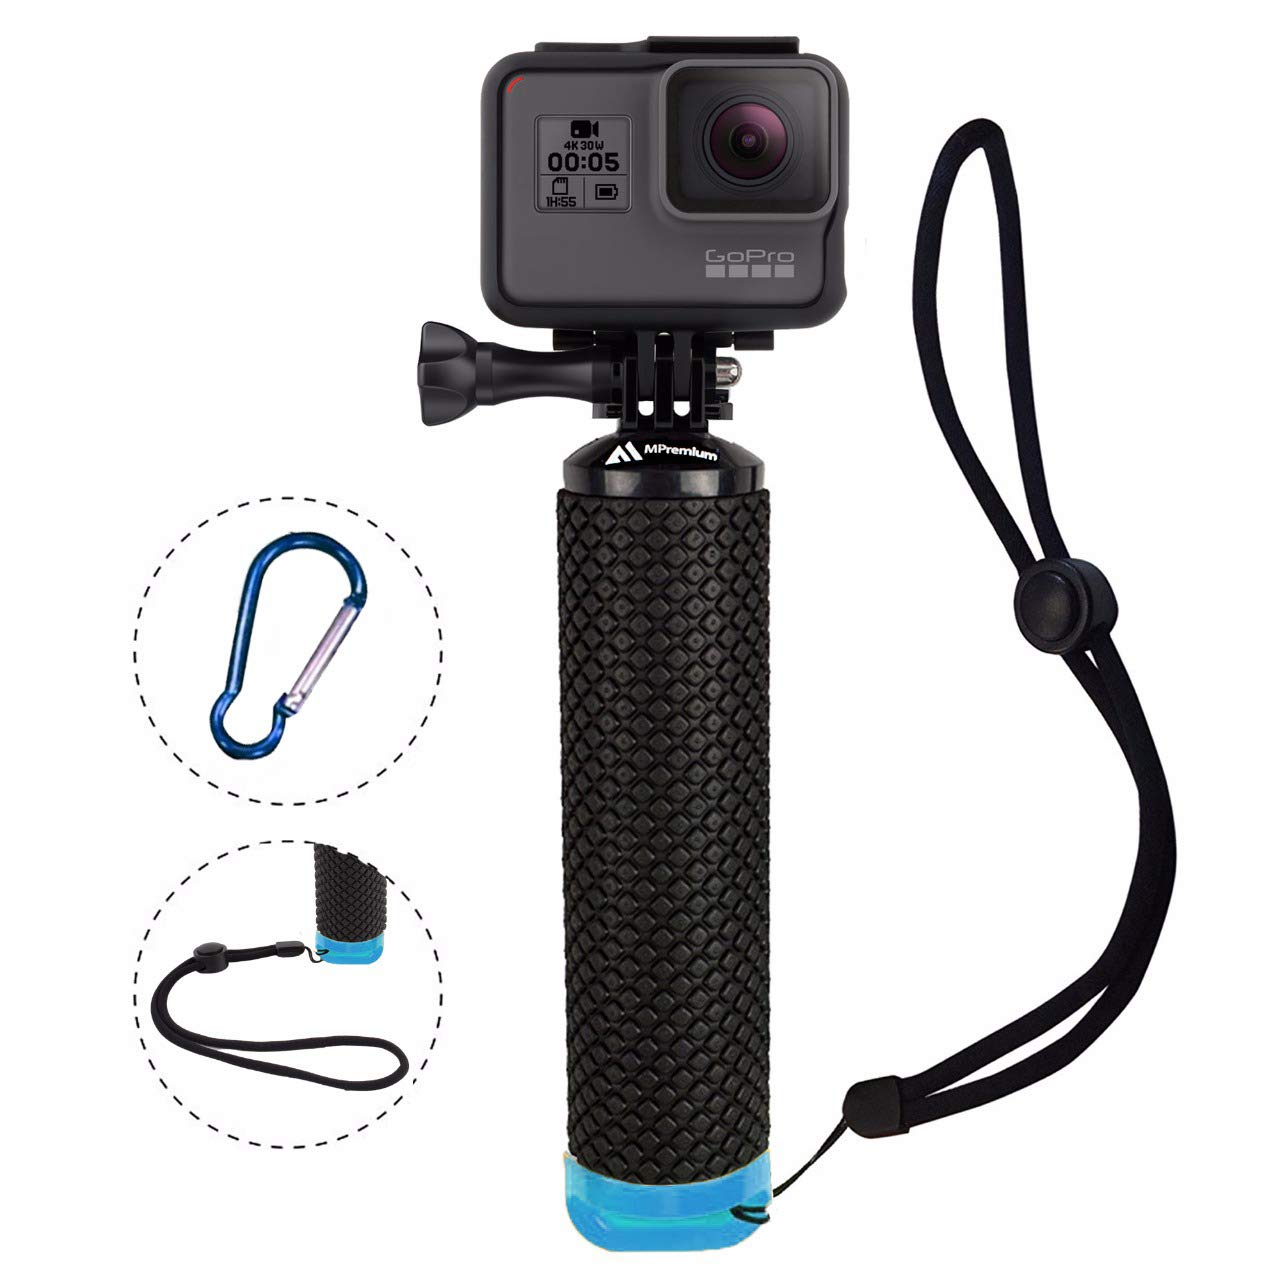 Waterproof Floating Hand Grip Compatible with GoPro Camera Hero 5 Session Black Silver Hero 7 6 5 4 3 3+ 2 1 Handler & Handle Mount Accessories Kit for Water Sport and Action Cameras (Blue) by MiPremium